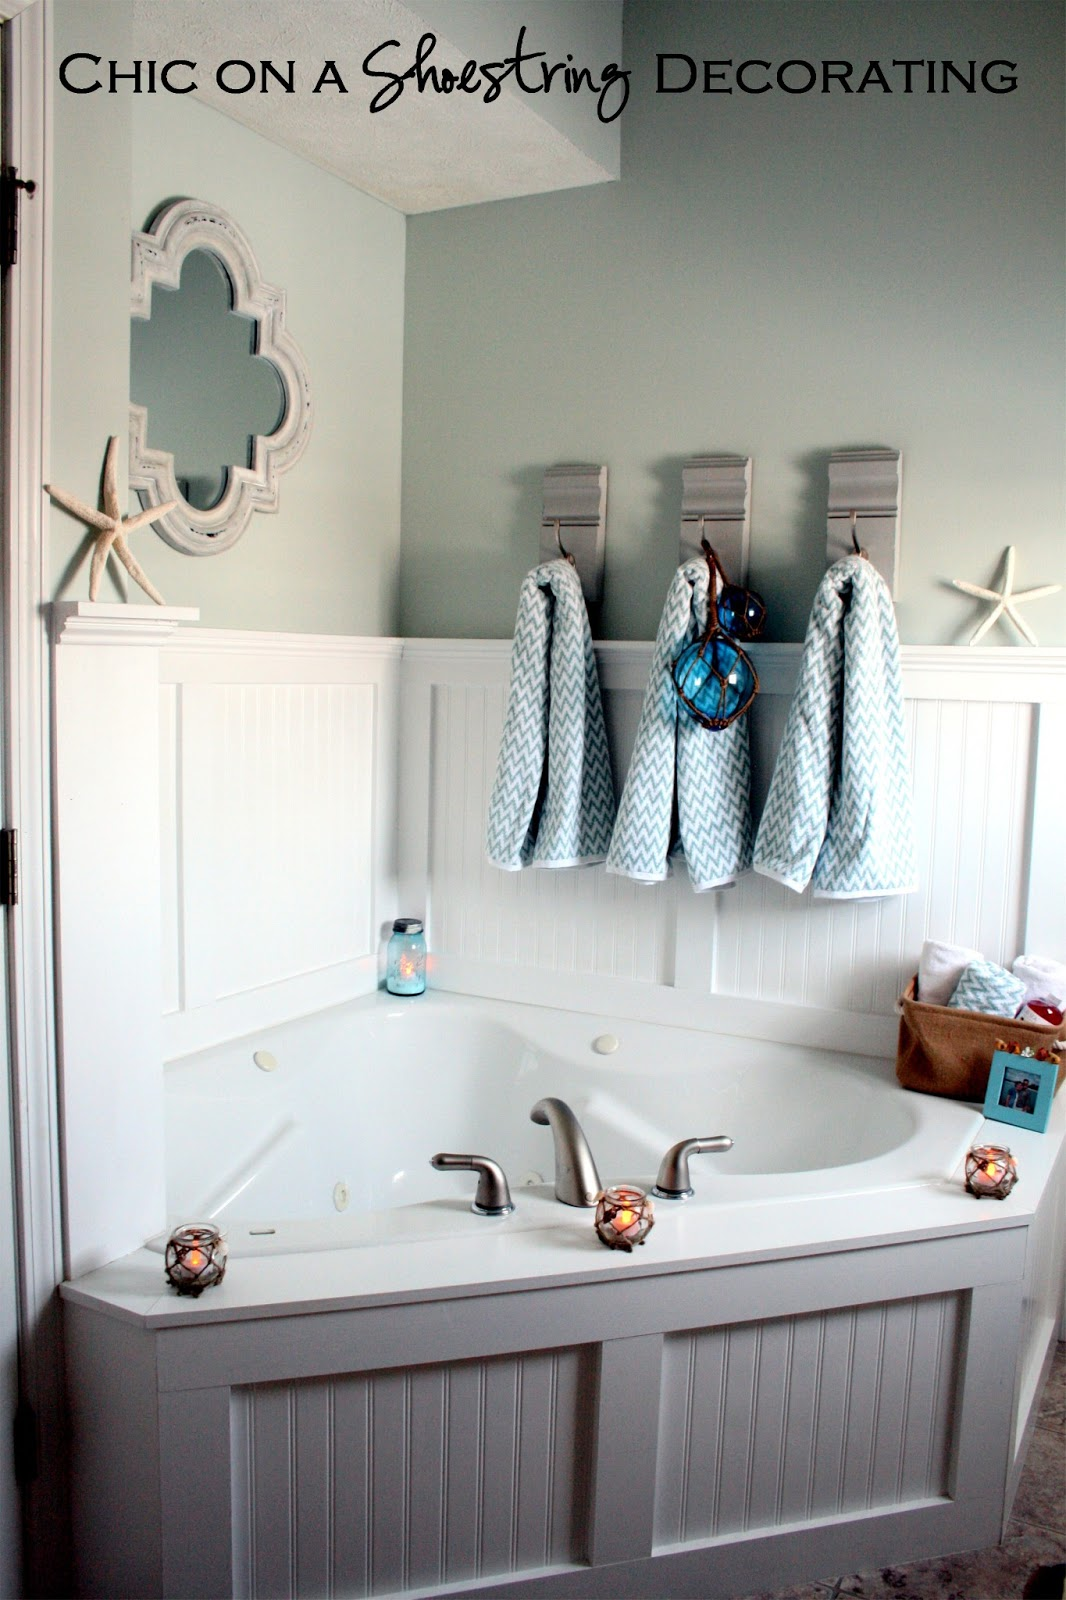 Chic on a shoestring decorating beachy bathroom reveal for Decorating ideas tub surround